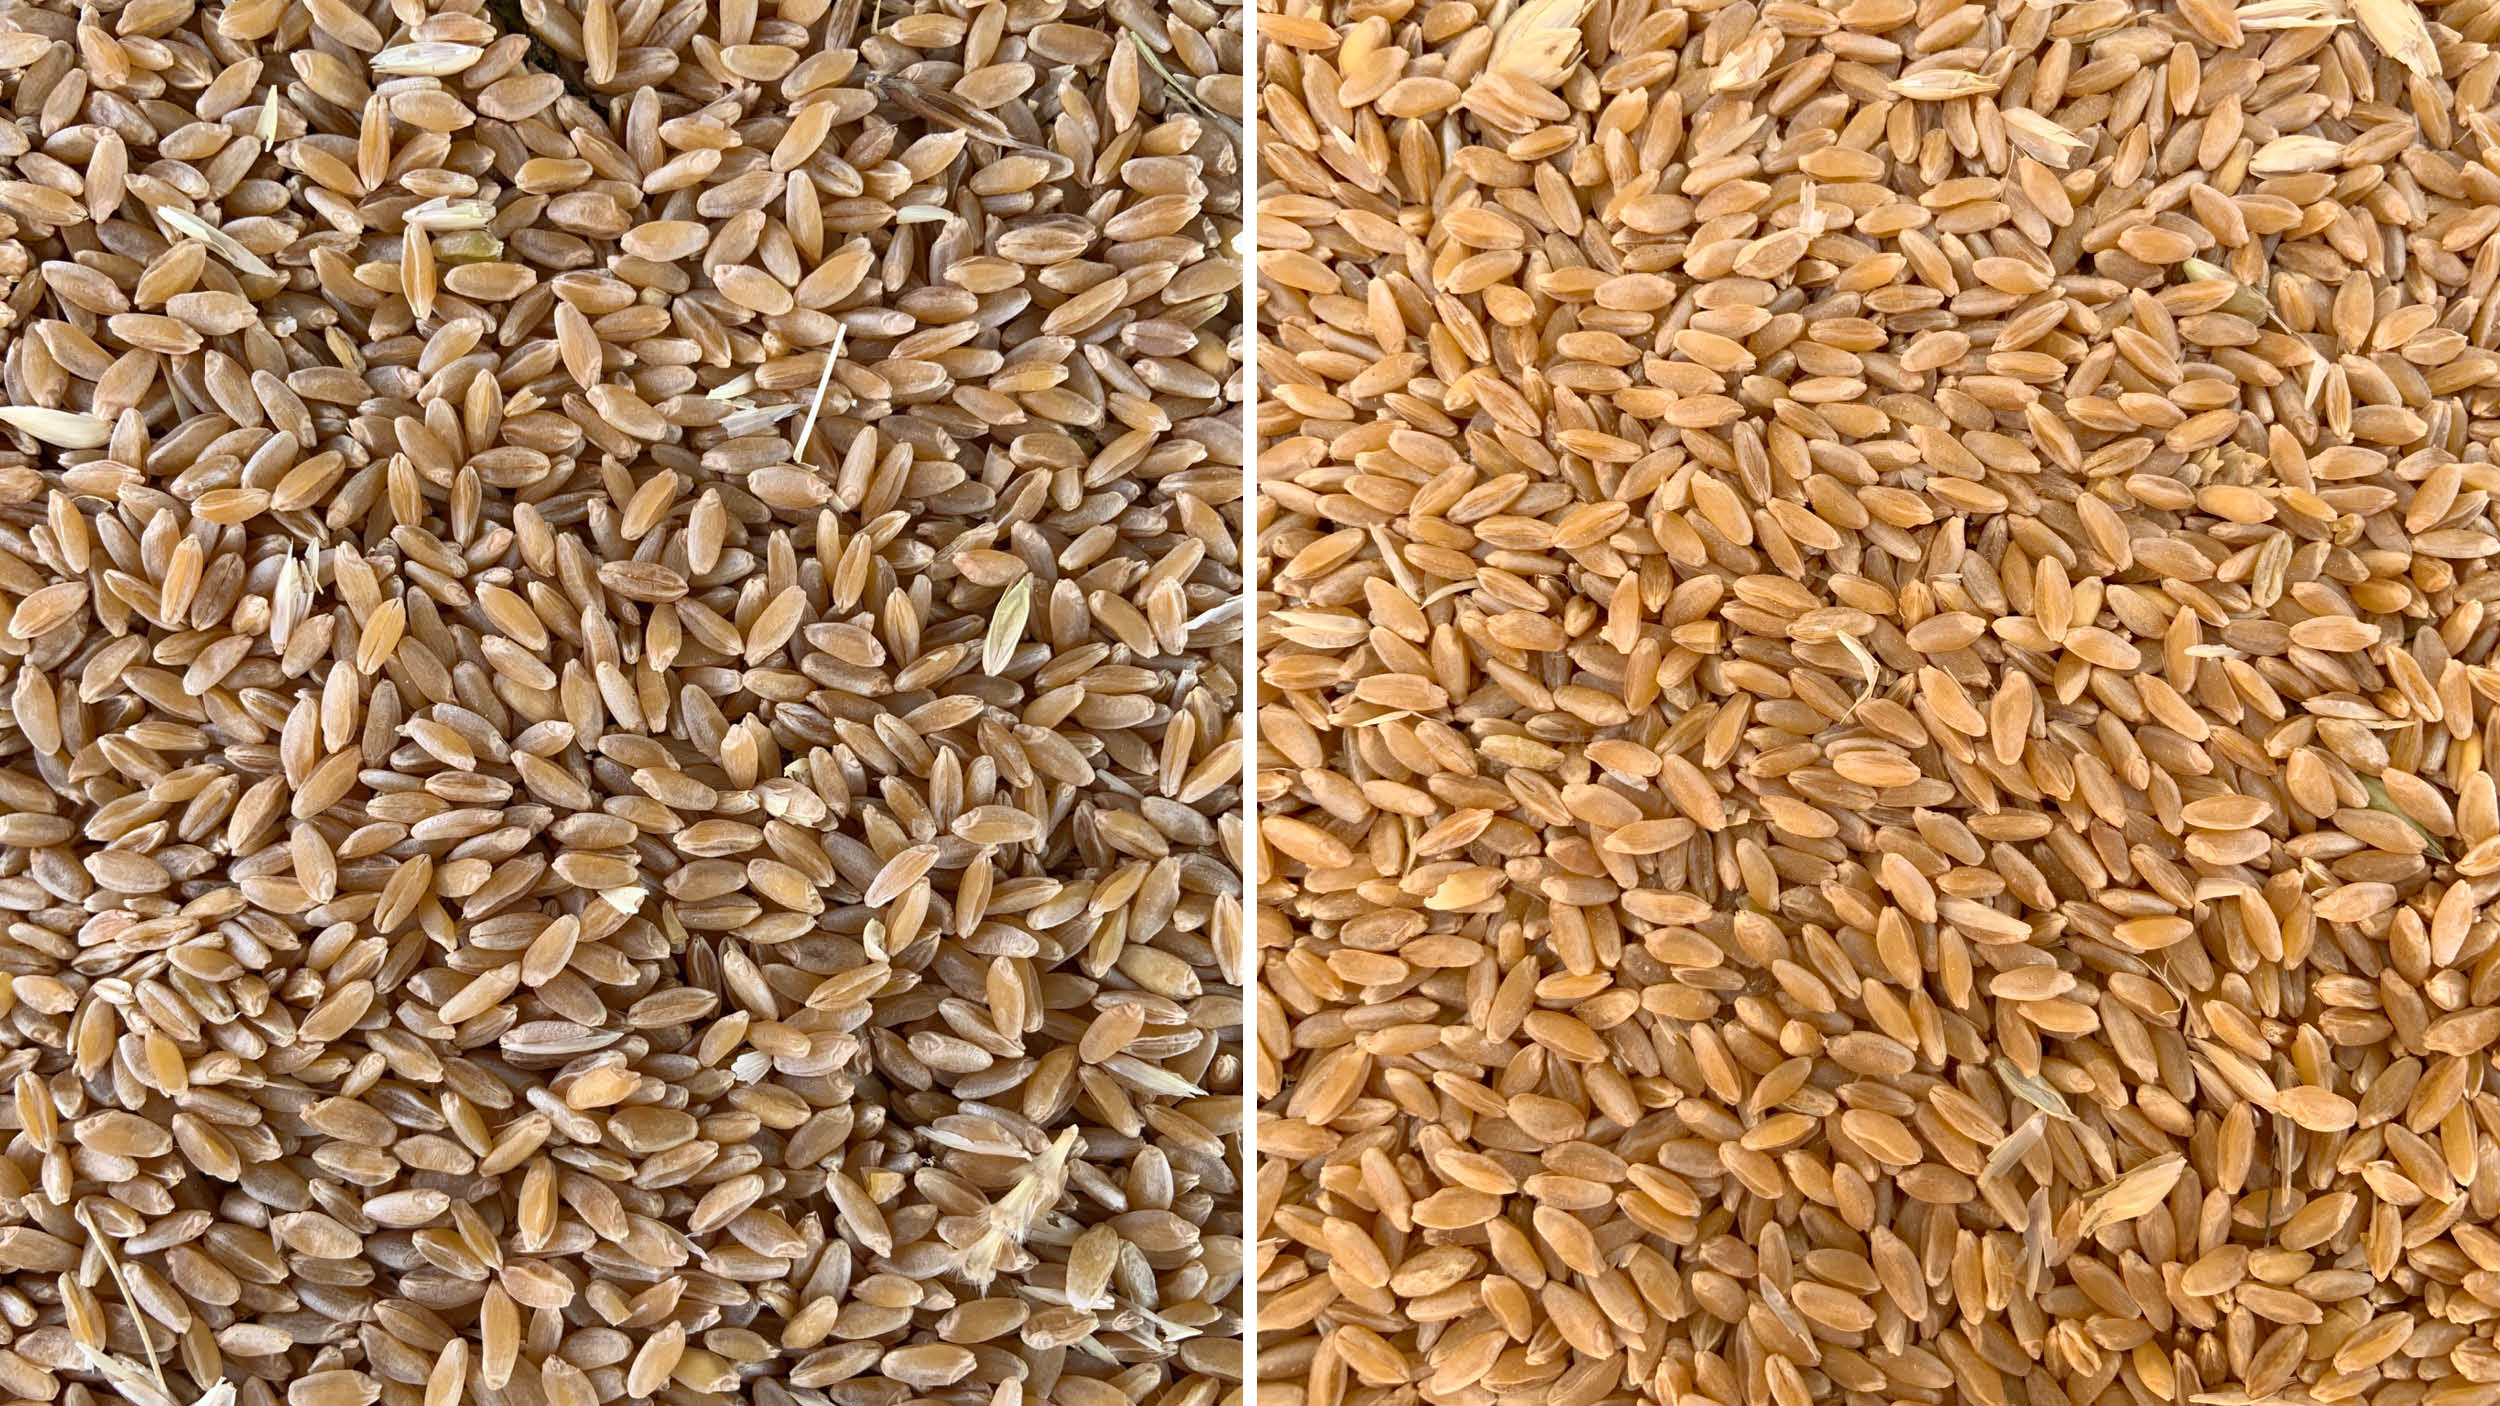 Durum wheat before & after being dried